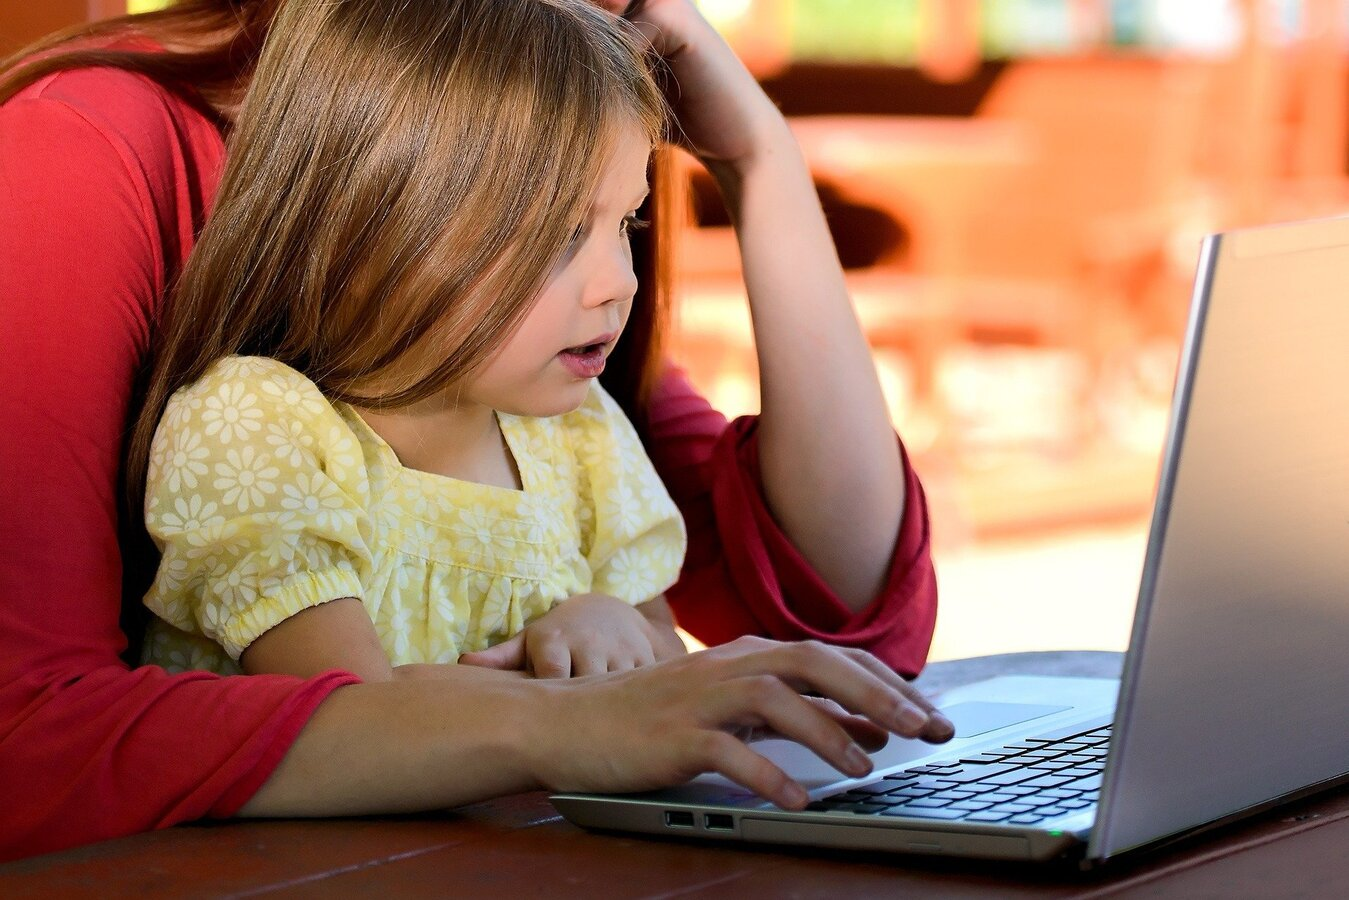 Tips for working from home while the kids are home!